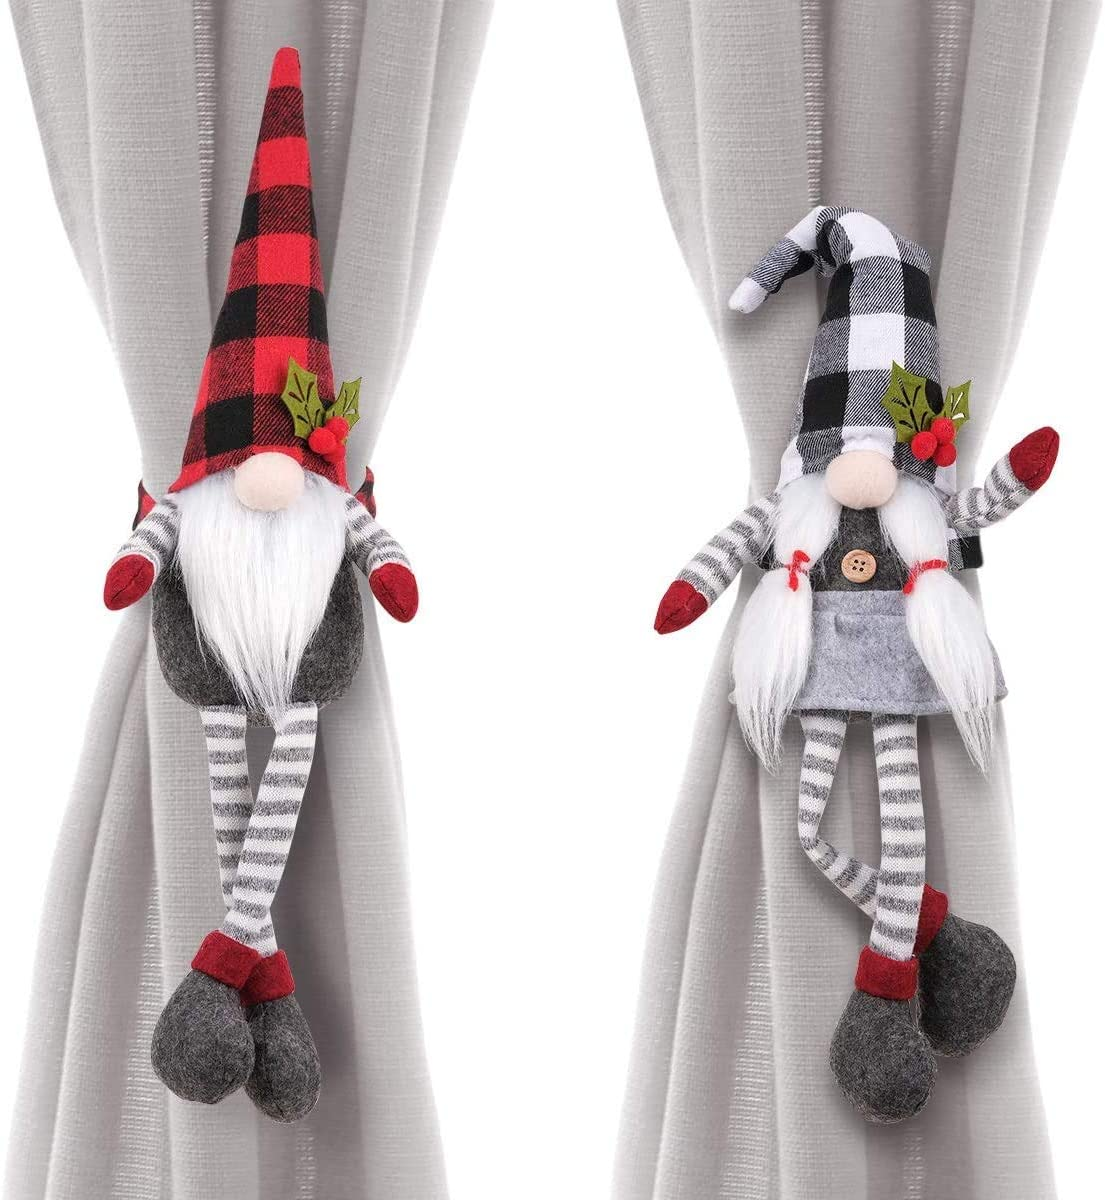 D-FantiX Christmas Curtain Tieback Buckle Set of 2, Mr and Mrs Gnome Curtain Tiebacks Holder Fastener Buckle Window Christmas Ornaments Decorations Home Décor